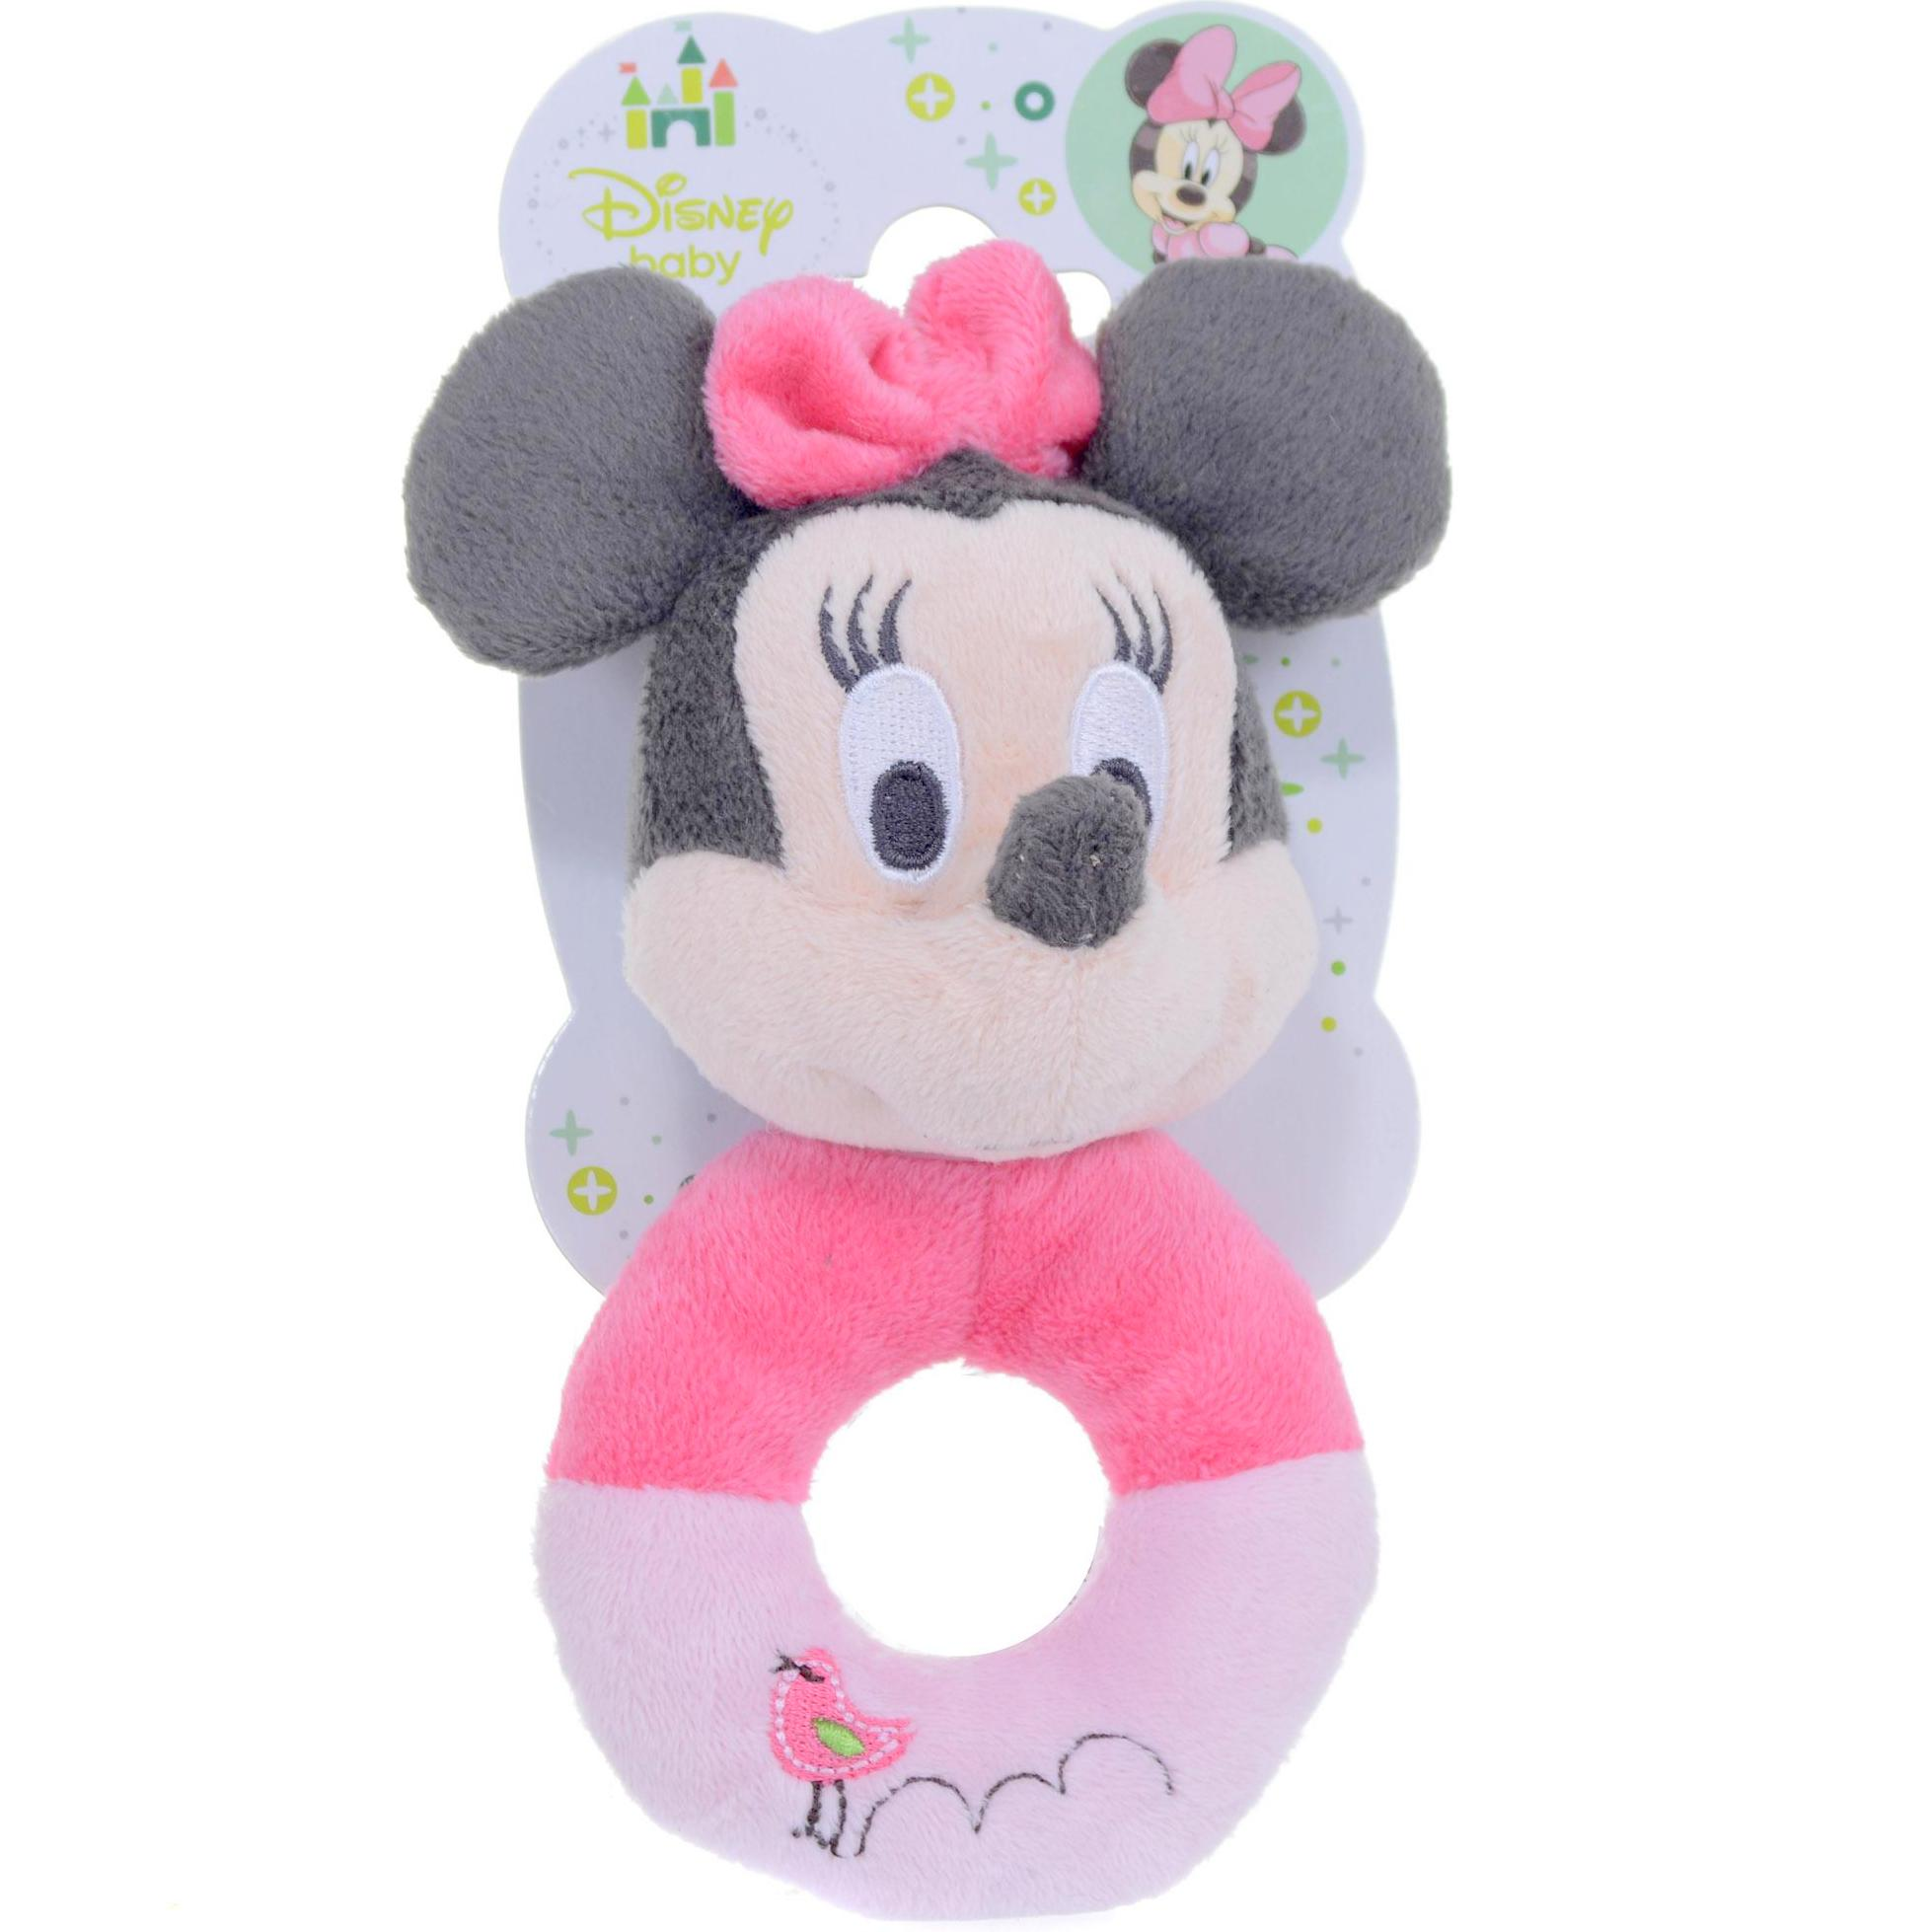 Free Minnie Mouse Baby Toy